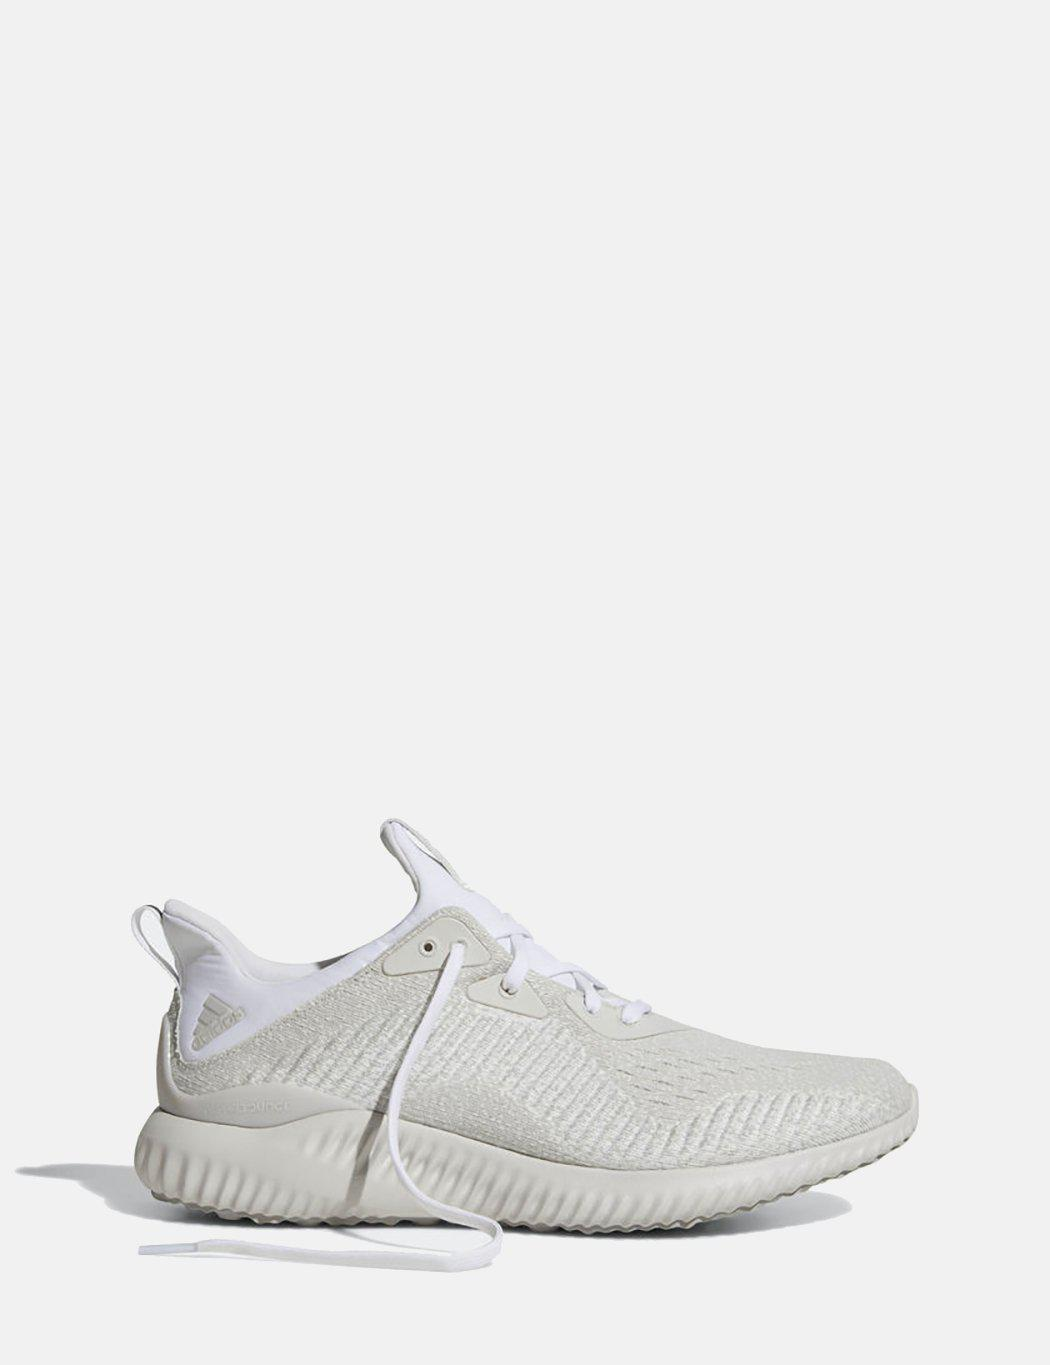 0f3a67563 Lyst - adidas Originals Adidas Alphabounce Em (db1092) in White for Men